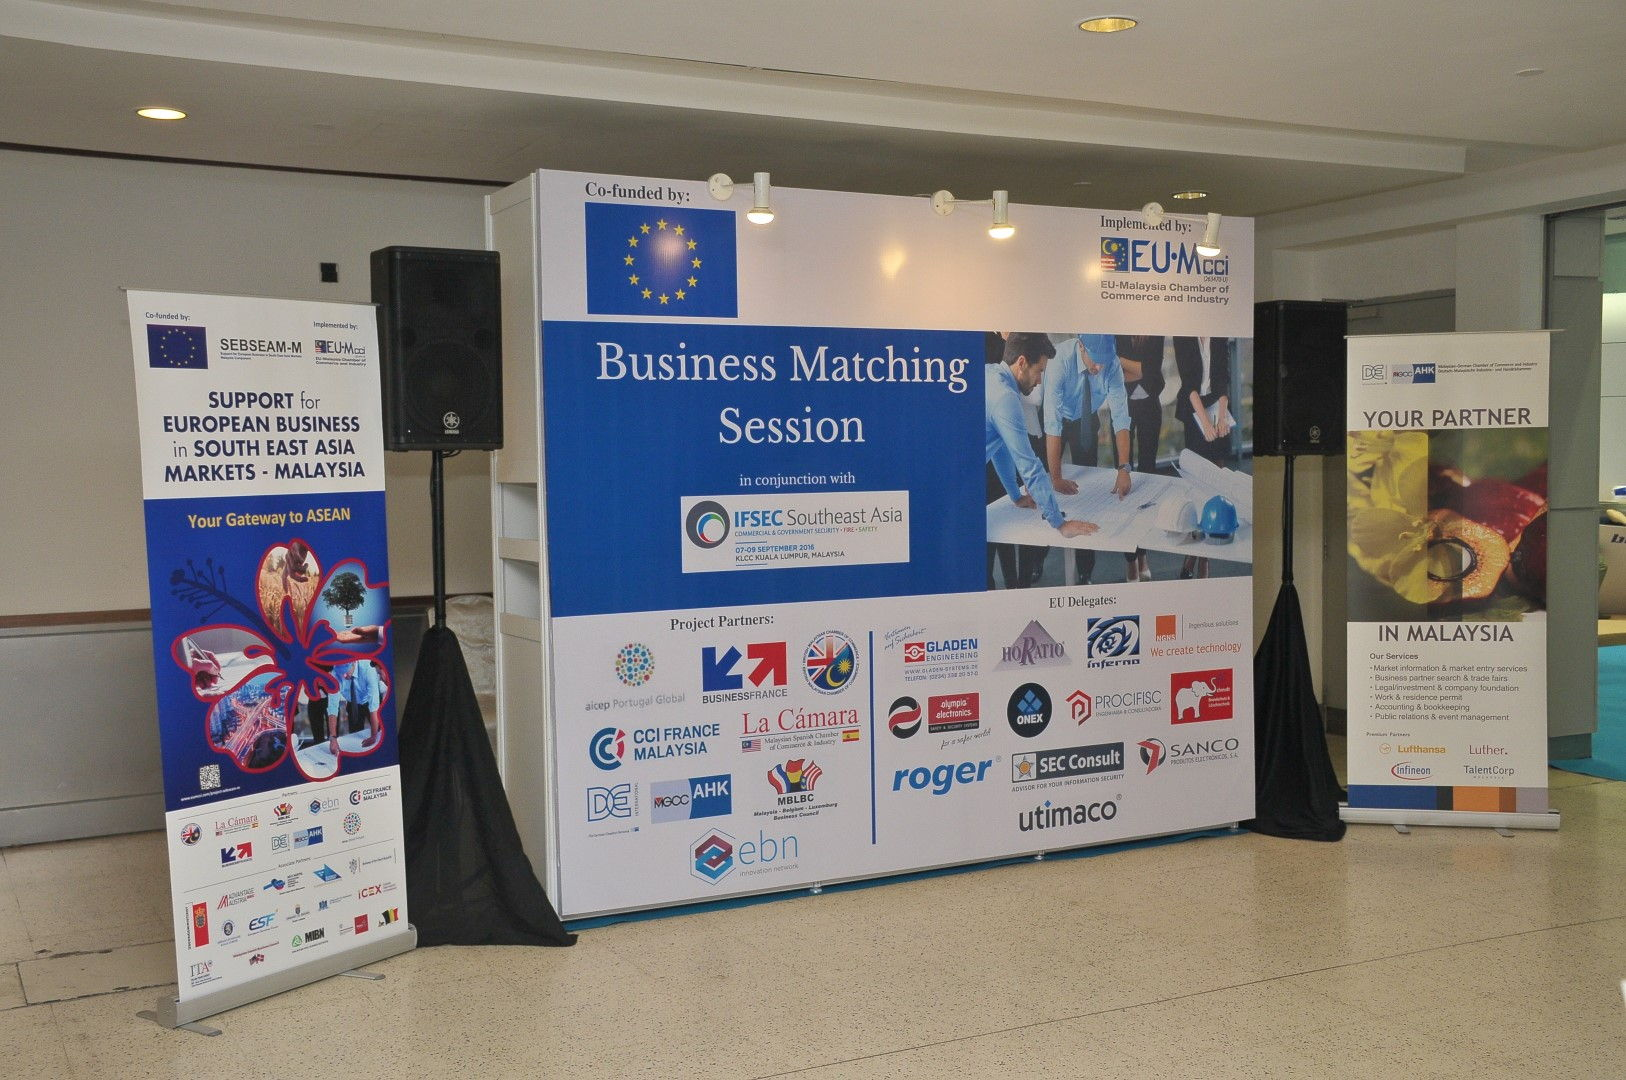 NGNS - Ingenious Solutions at Business Matching Session, Kuala Lumpur, Malaysia